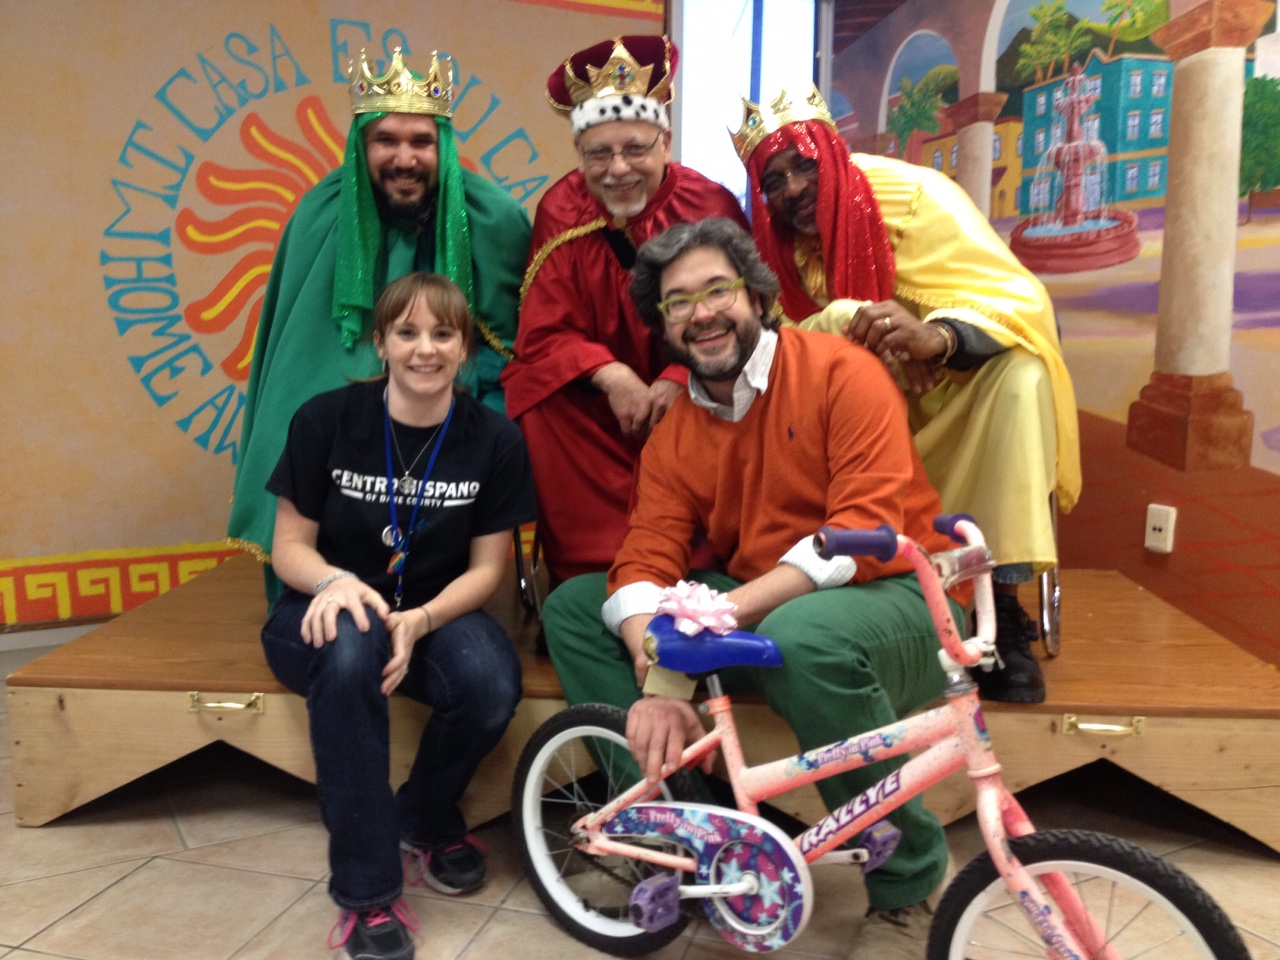 Wheels for Winners partnered with Centro Hispano to give out toddler-sized and small youth bicyclesduring the 2015 Tres Reyes celebration, heldinJanuary. Pictured with the Three Kings areLauren Deakman,Director of Youth Programs for Centro Hispano and Wheels for Winners Board President Stephen Bagwell.